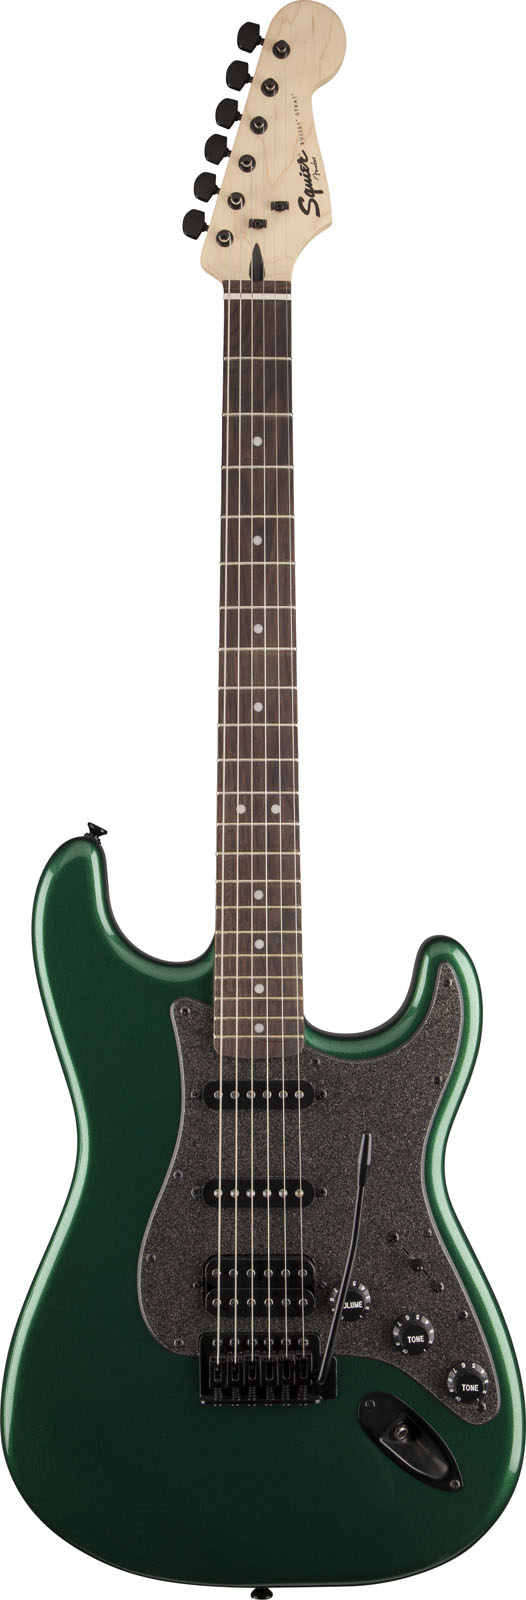 Squier By Fender Stratocaster Bullet Hss Green Metallic